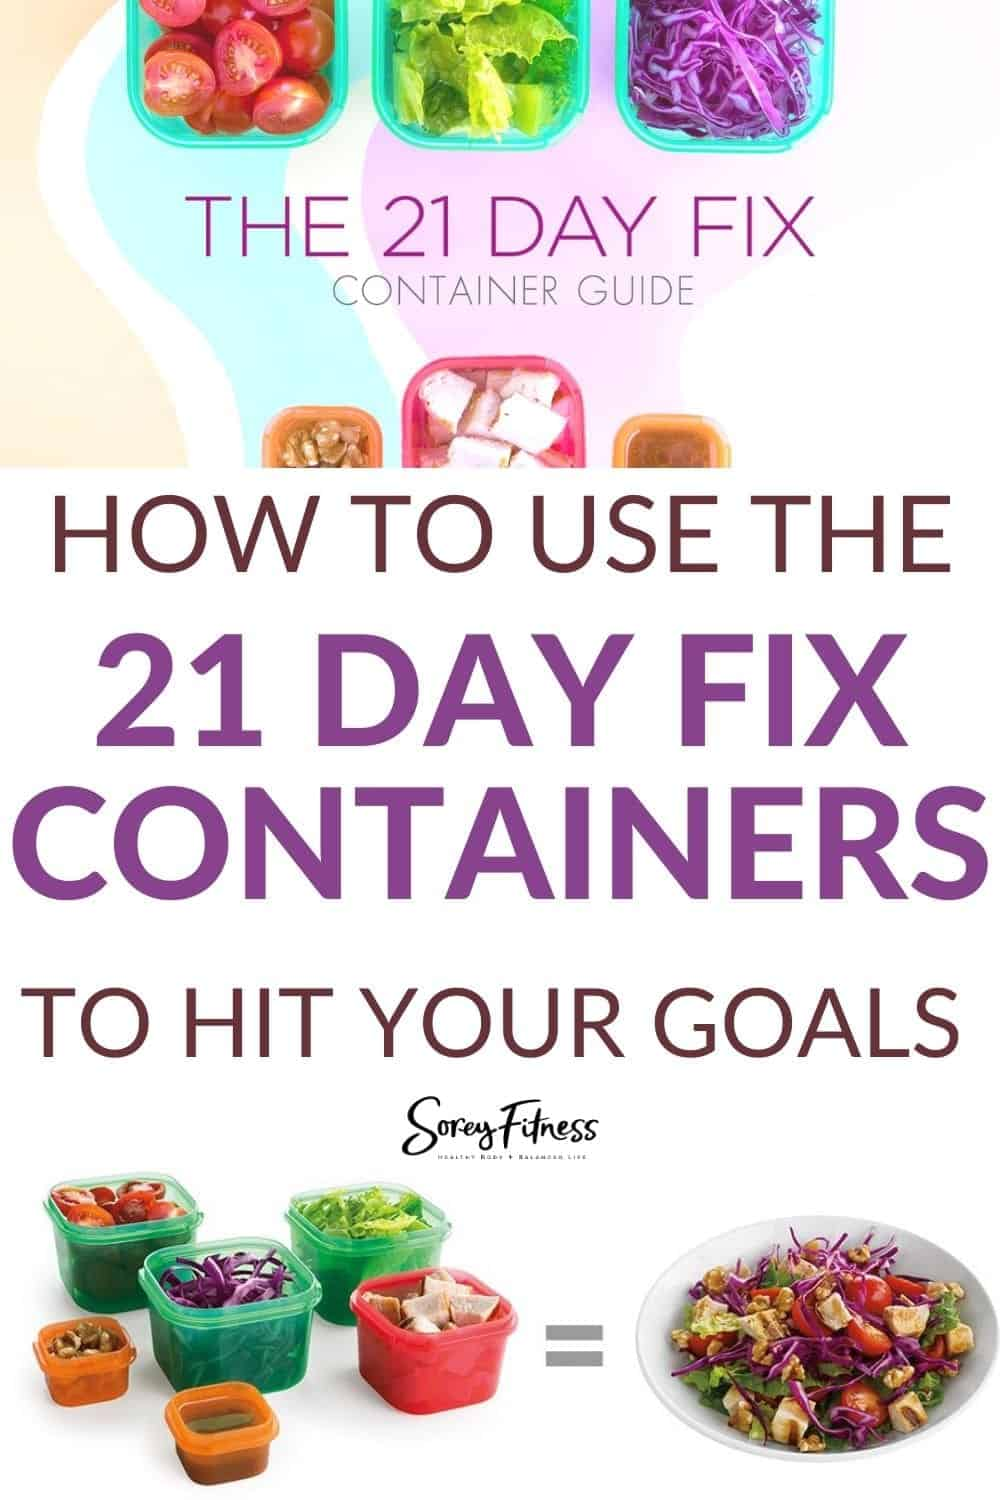 how to use the 21 day fix containers to hit your goals